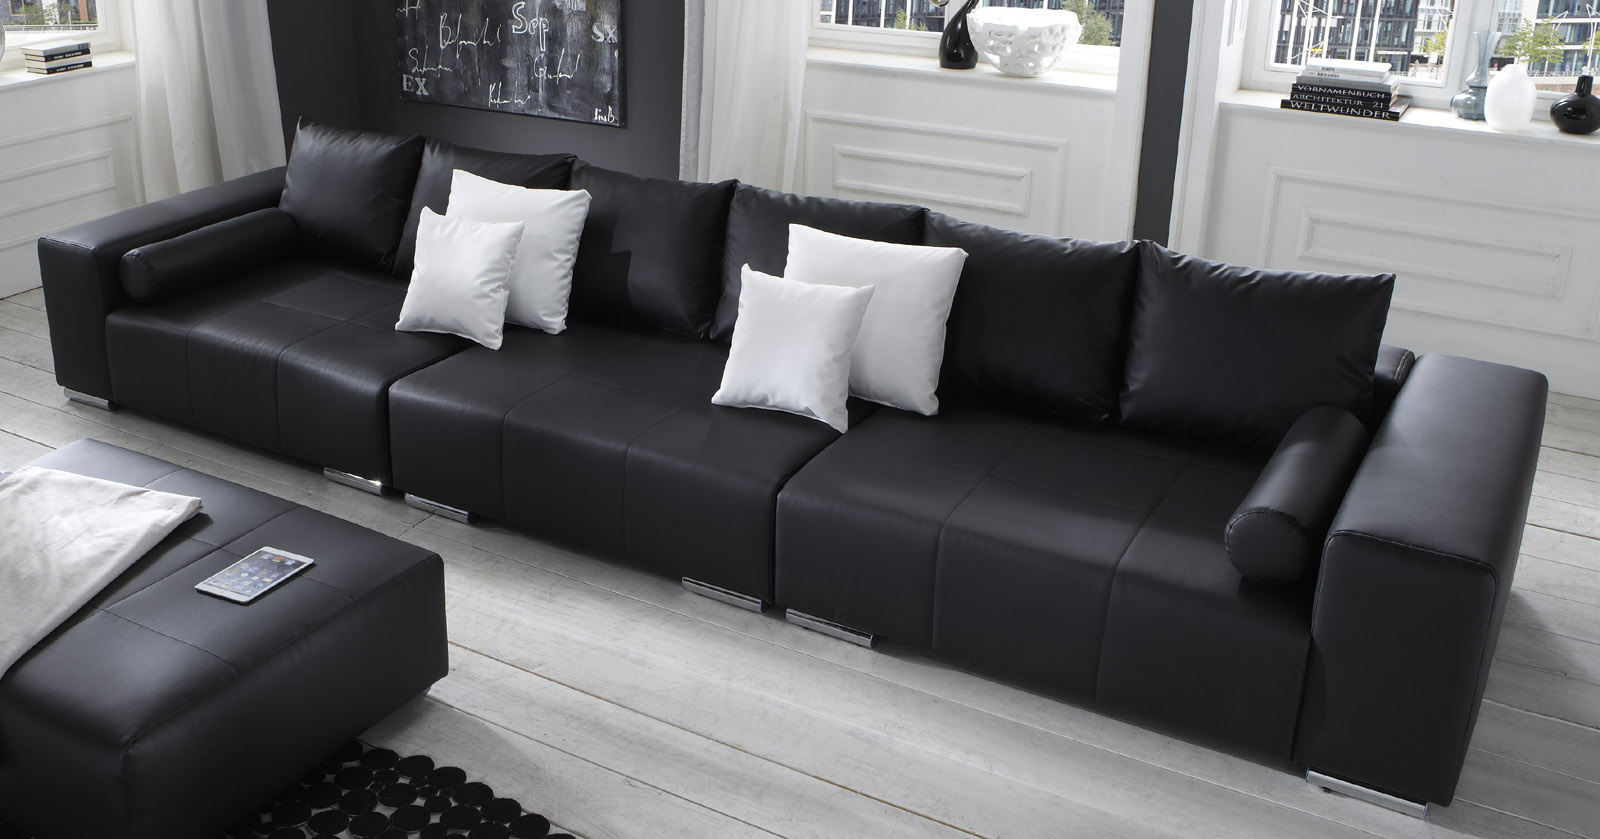 Genial Big Sofa Mit Hocker Referenz Von Amazing Sam Schwarz Cm Optional Jupiter With